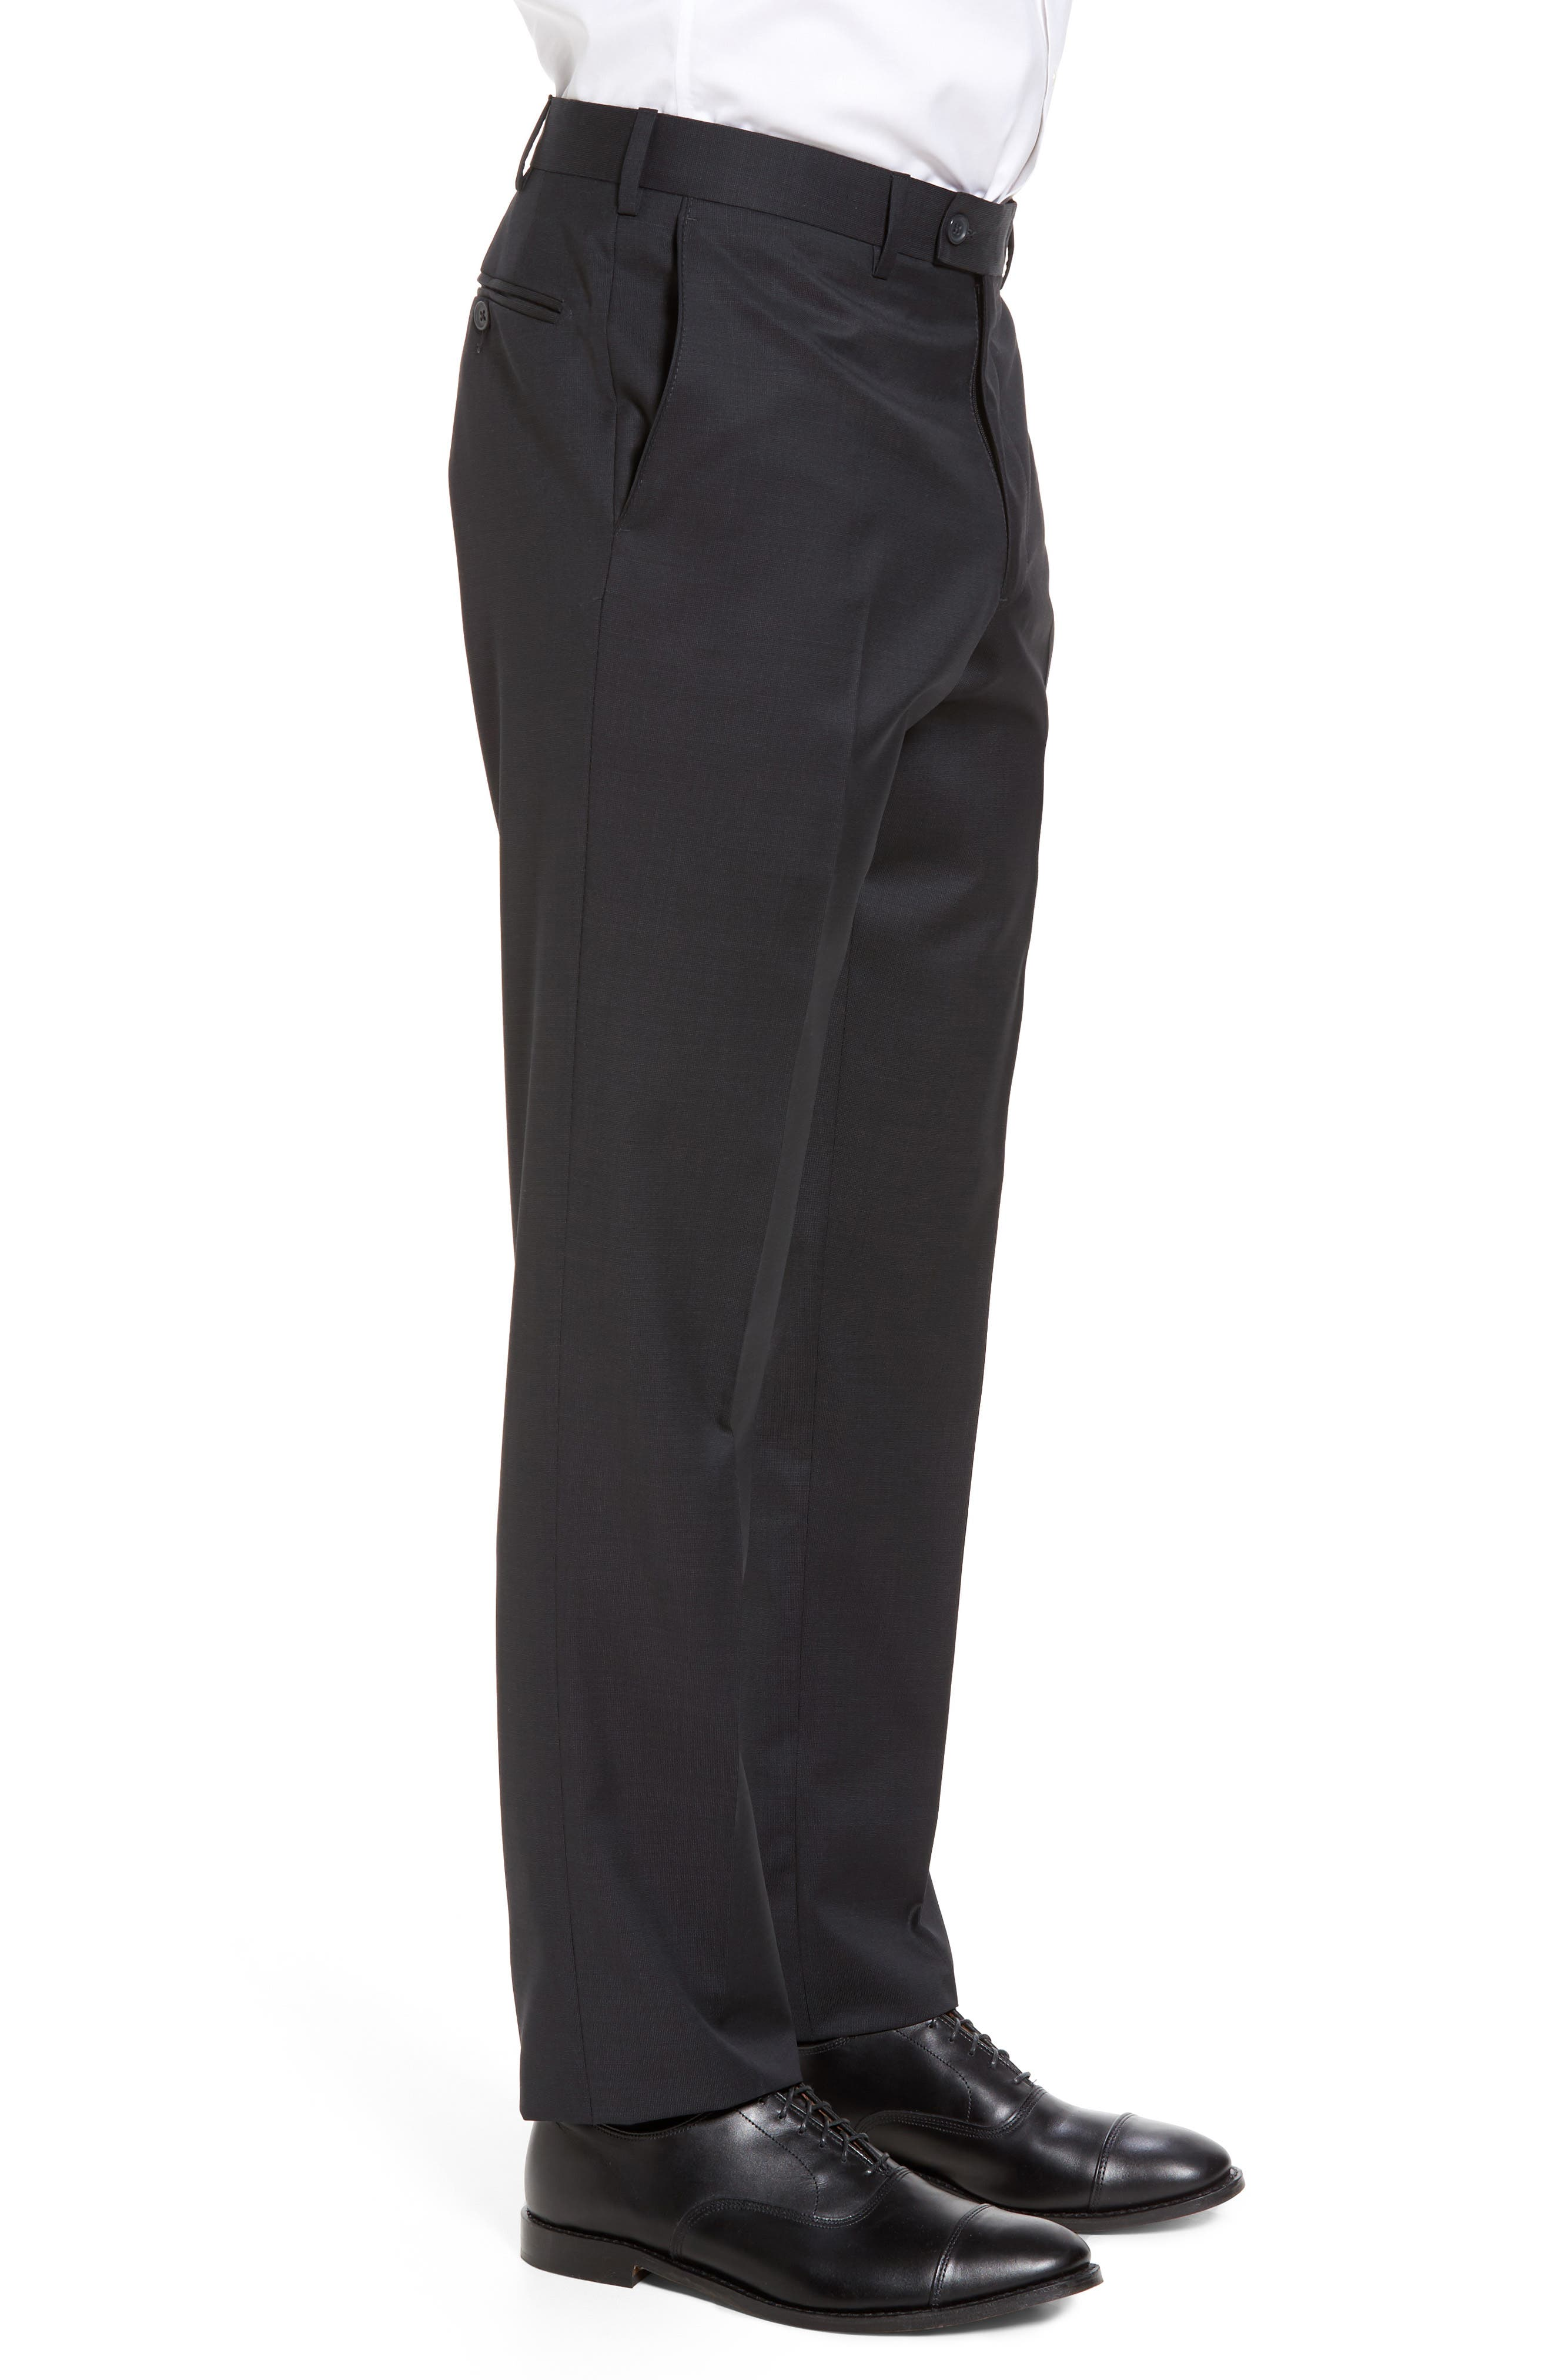 Flat Front Solid Wool Trousers,                             Alternate thumbnail 4, color,                             010